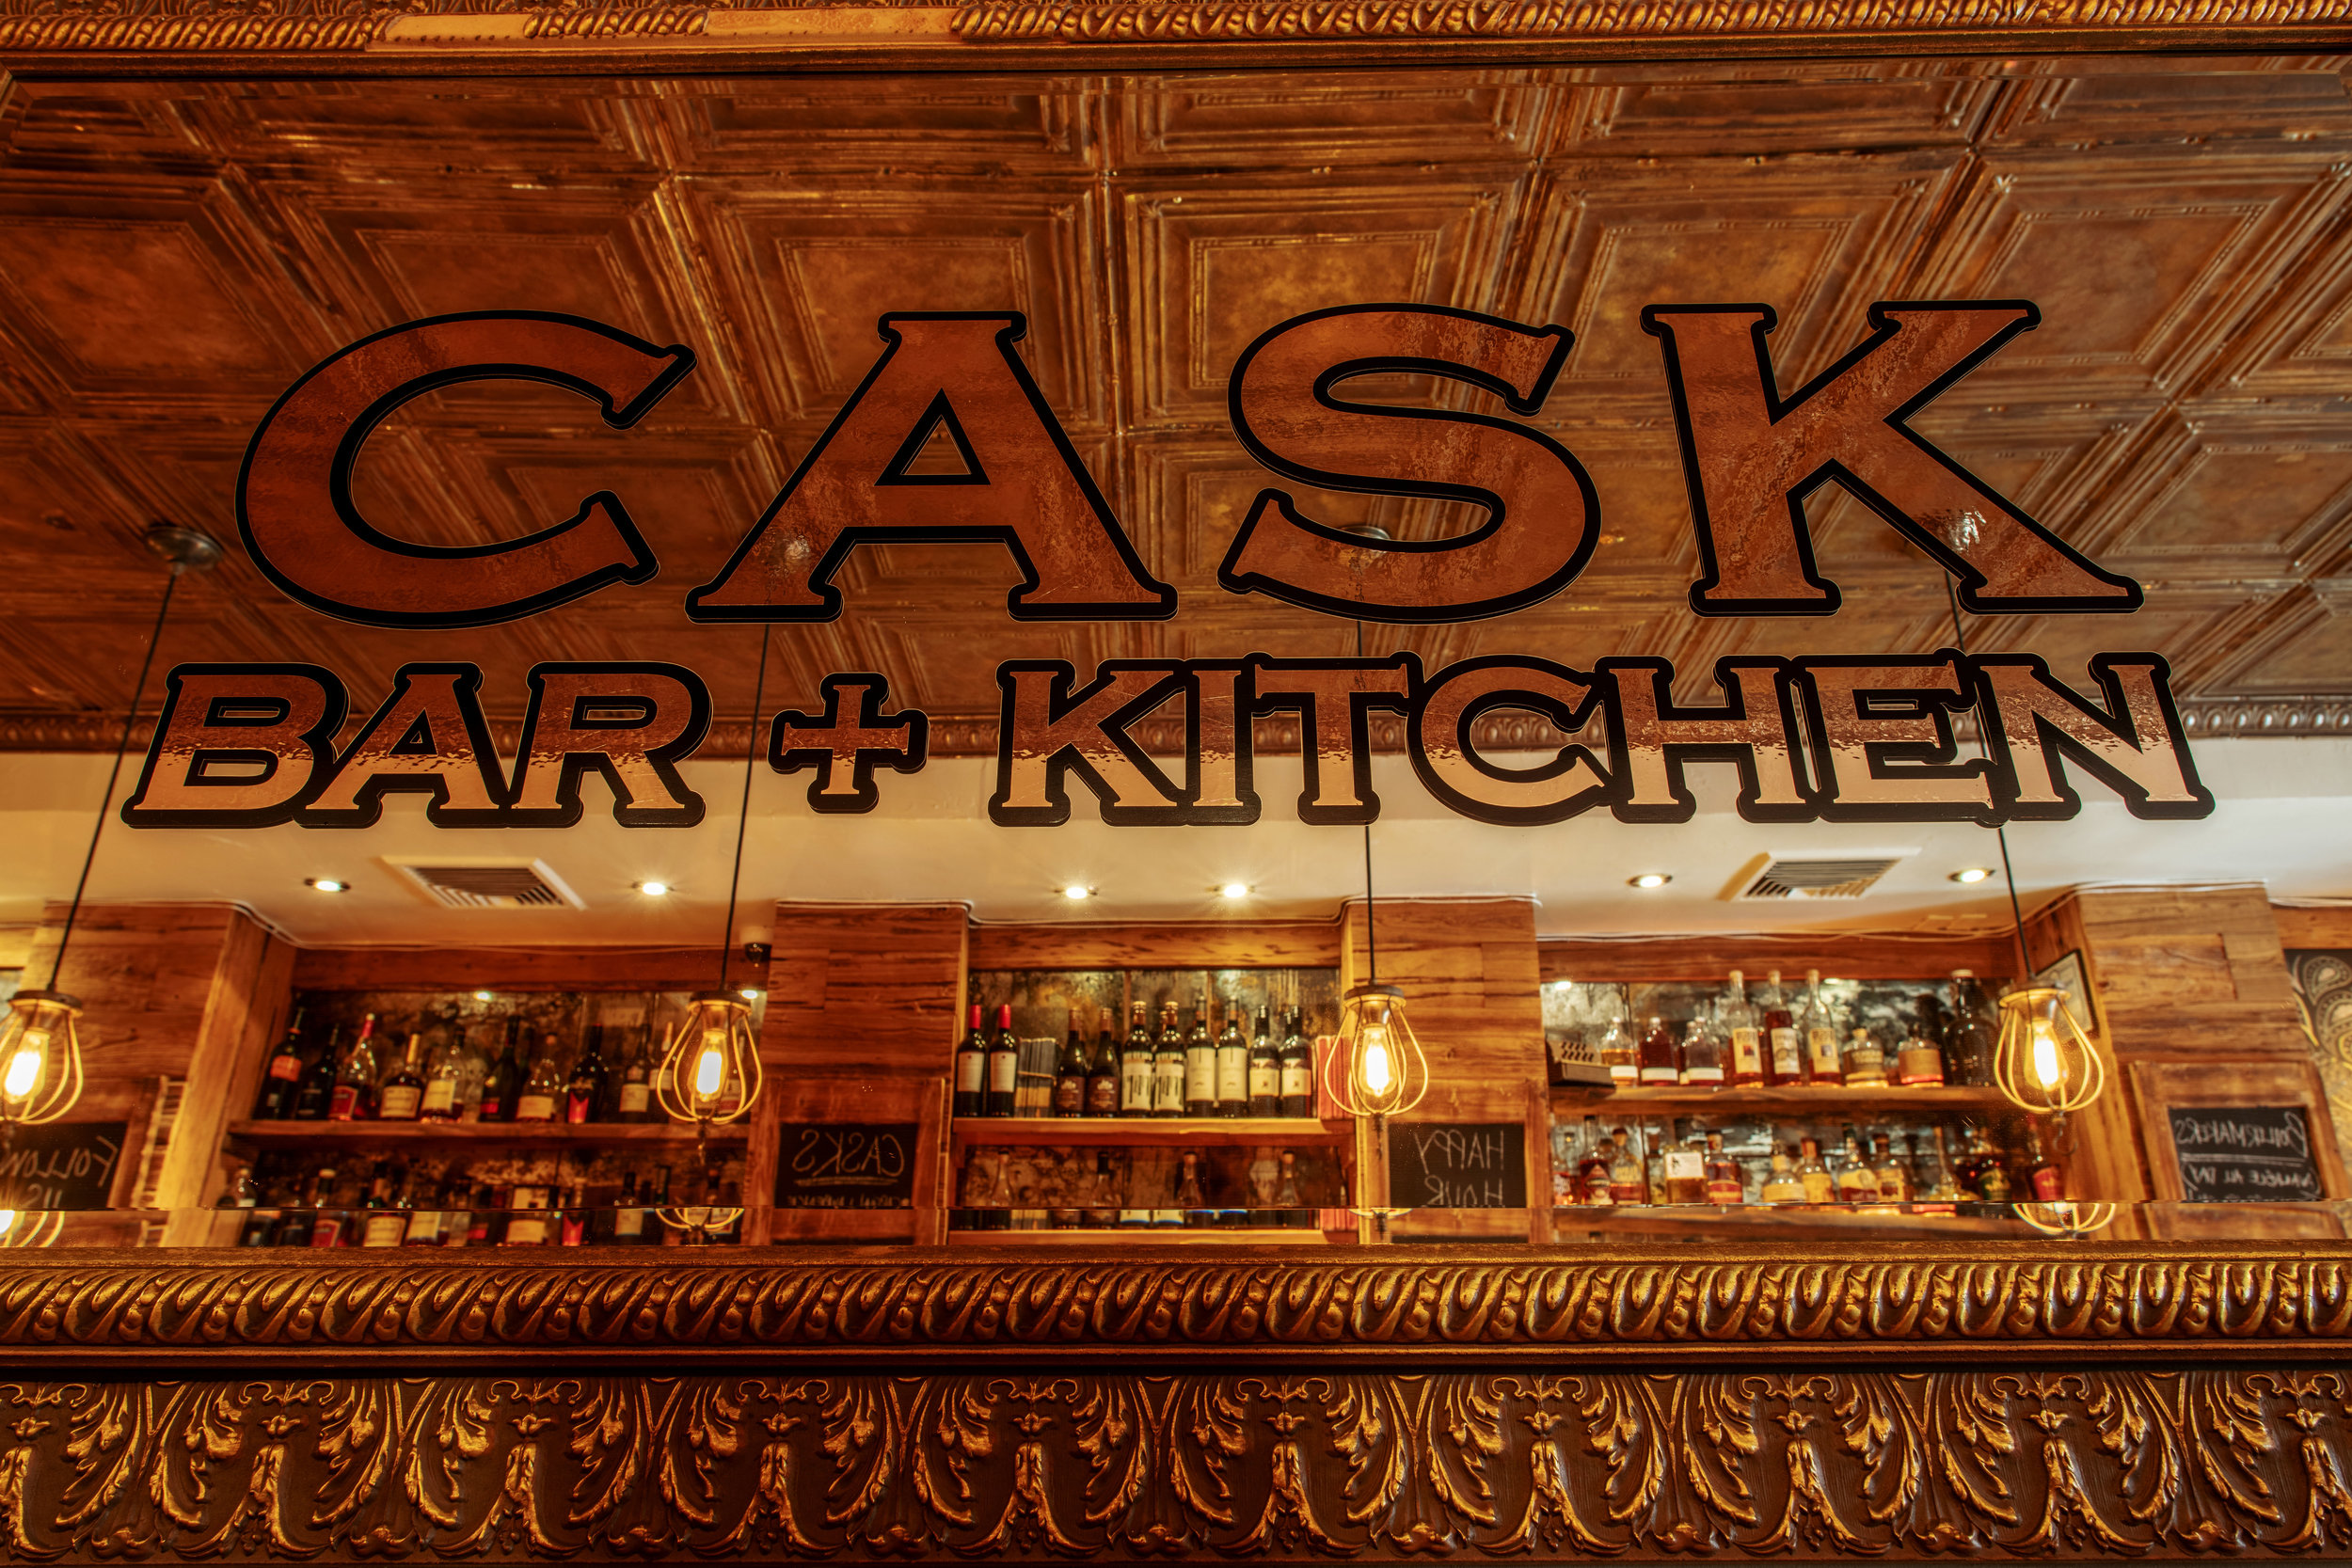 Cask Bar & Kitchen harks back to a by-gone era. - One of craftsmanship and authenticity.Of dimly lit encounters, great conversation & hand drawn ales. Well informed Barkeeps will guide the most discerning of taste buds.Creating carefully crafted cocktails and pouring a wide range of Bourbon and Rye Whiskey.